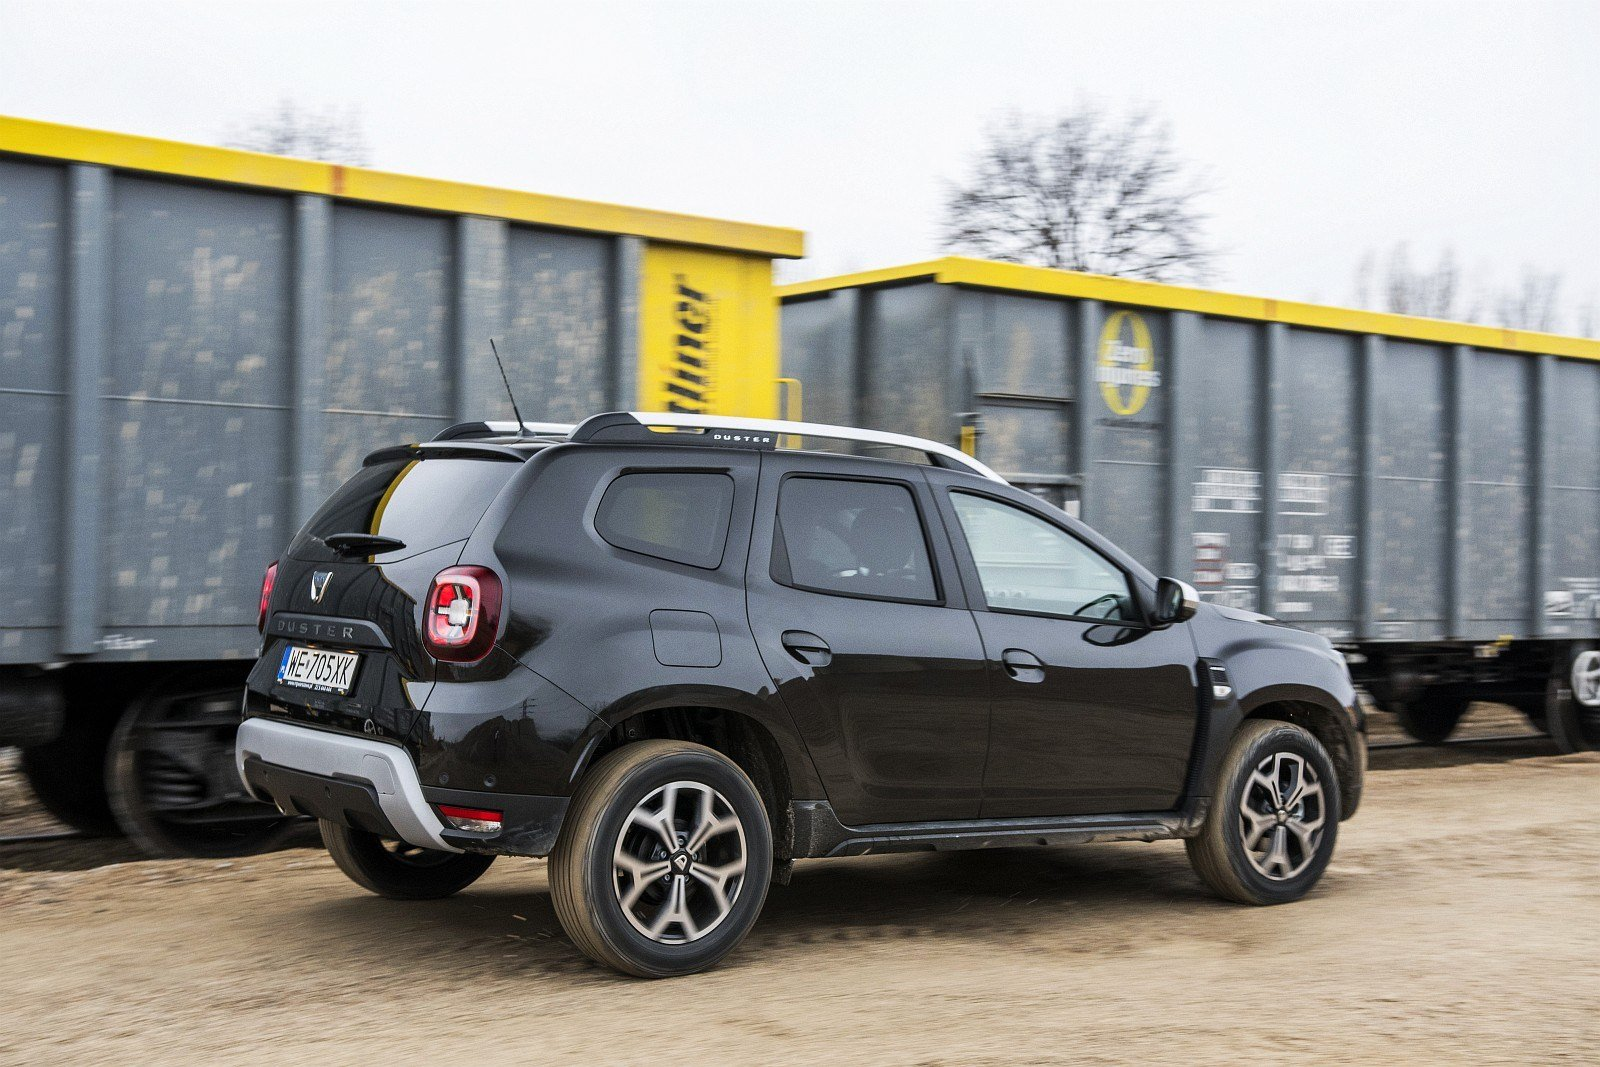 Dacia Duster 1.3 TCe 150 4WD test 2020 tył